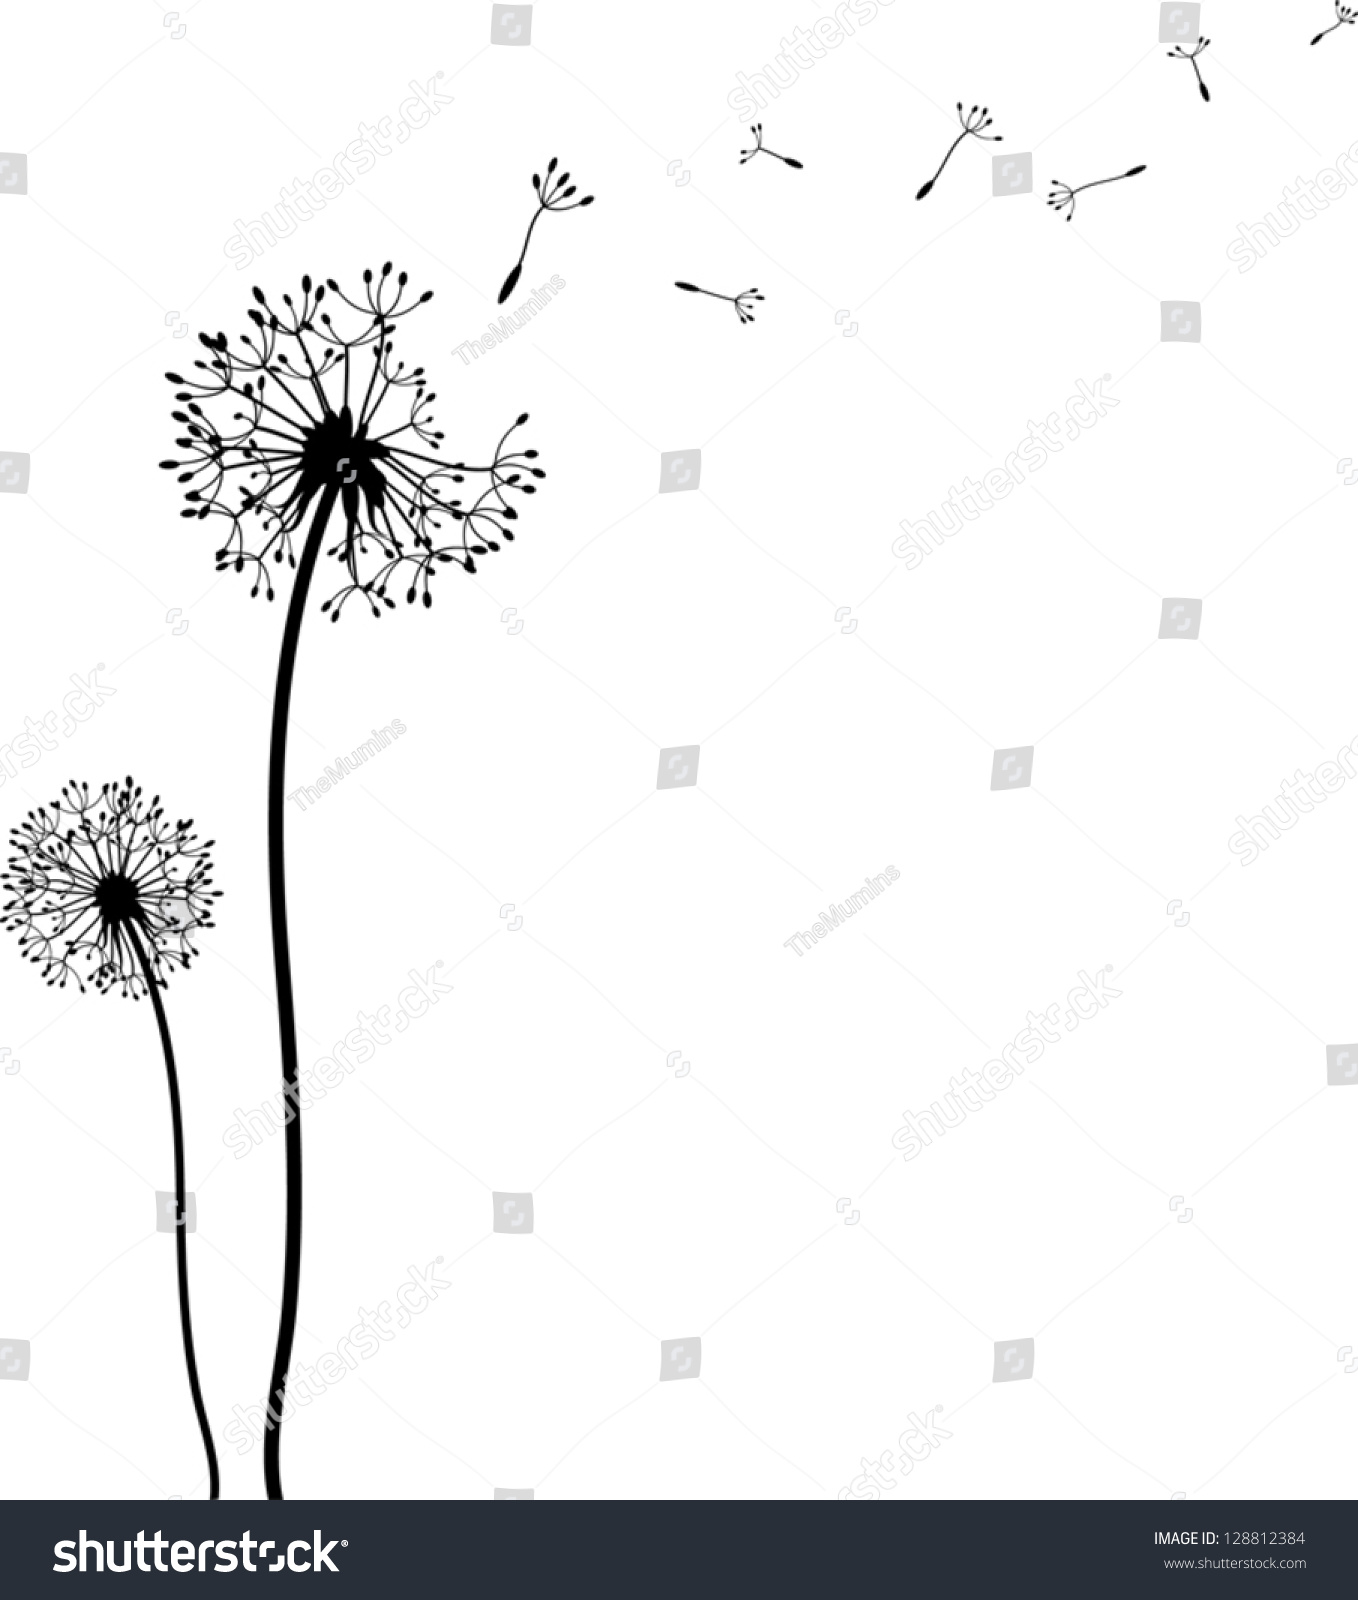 Dandelion Black And White Drawing.